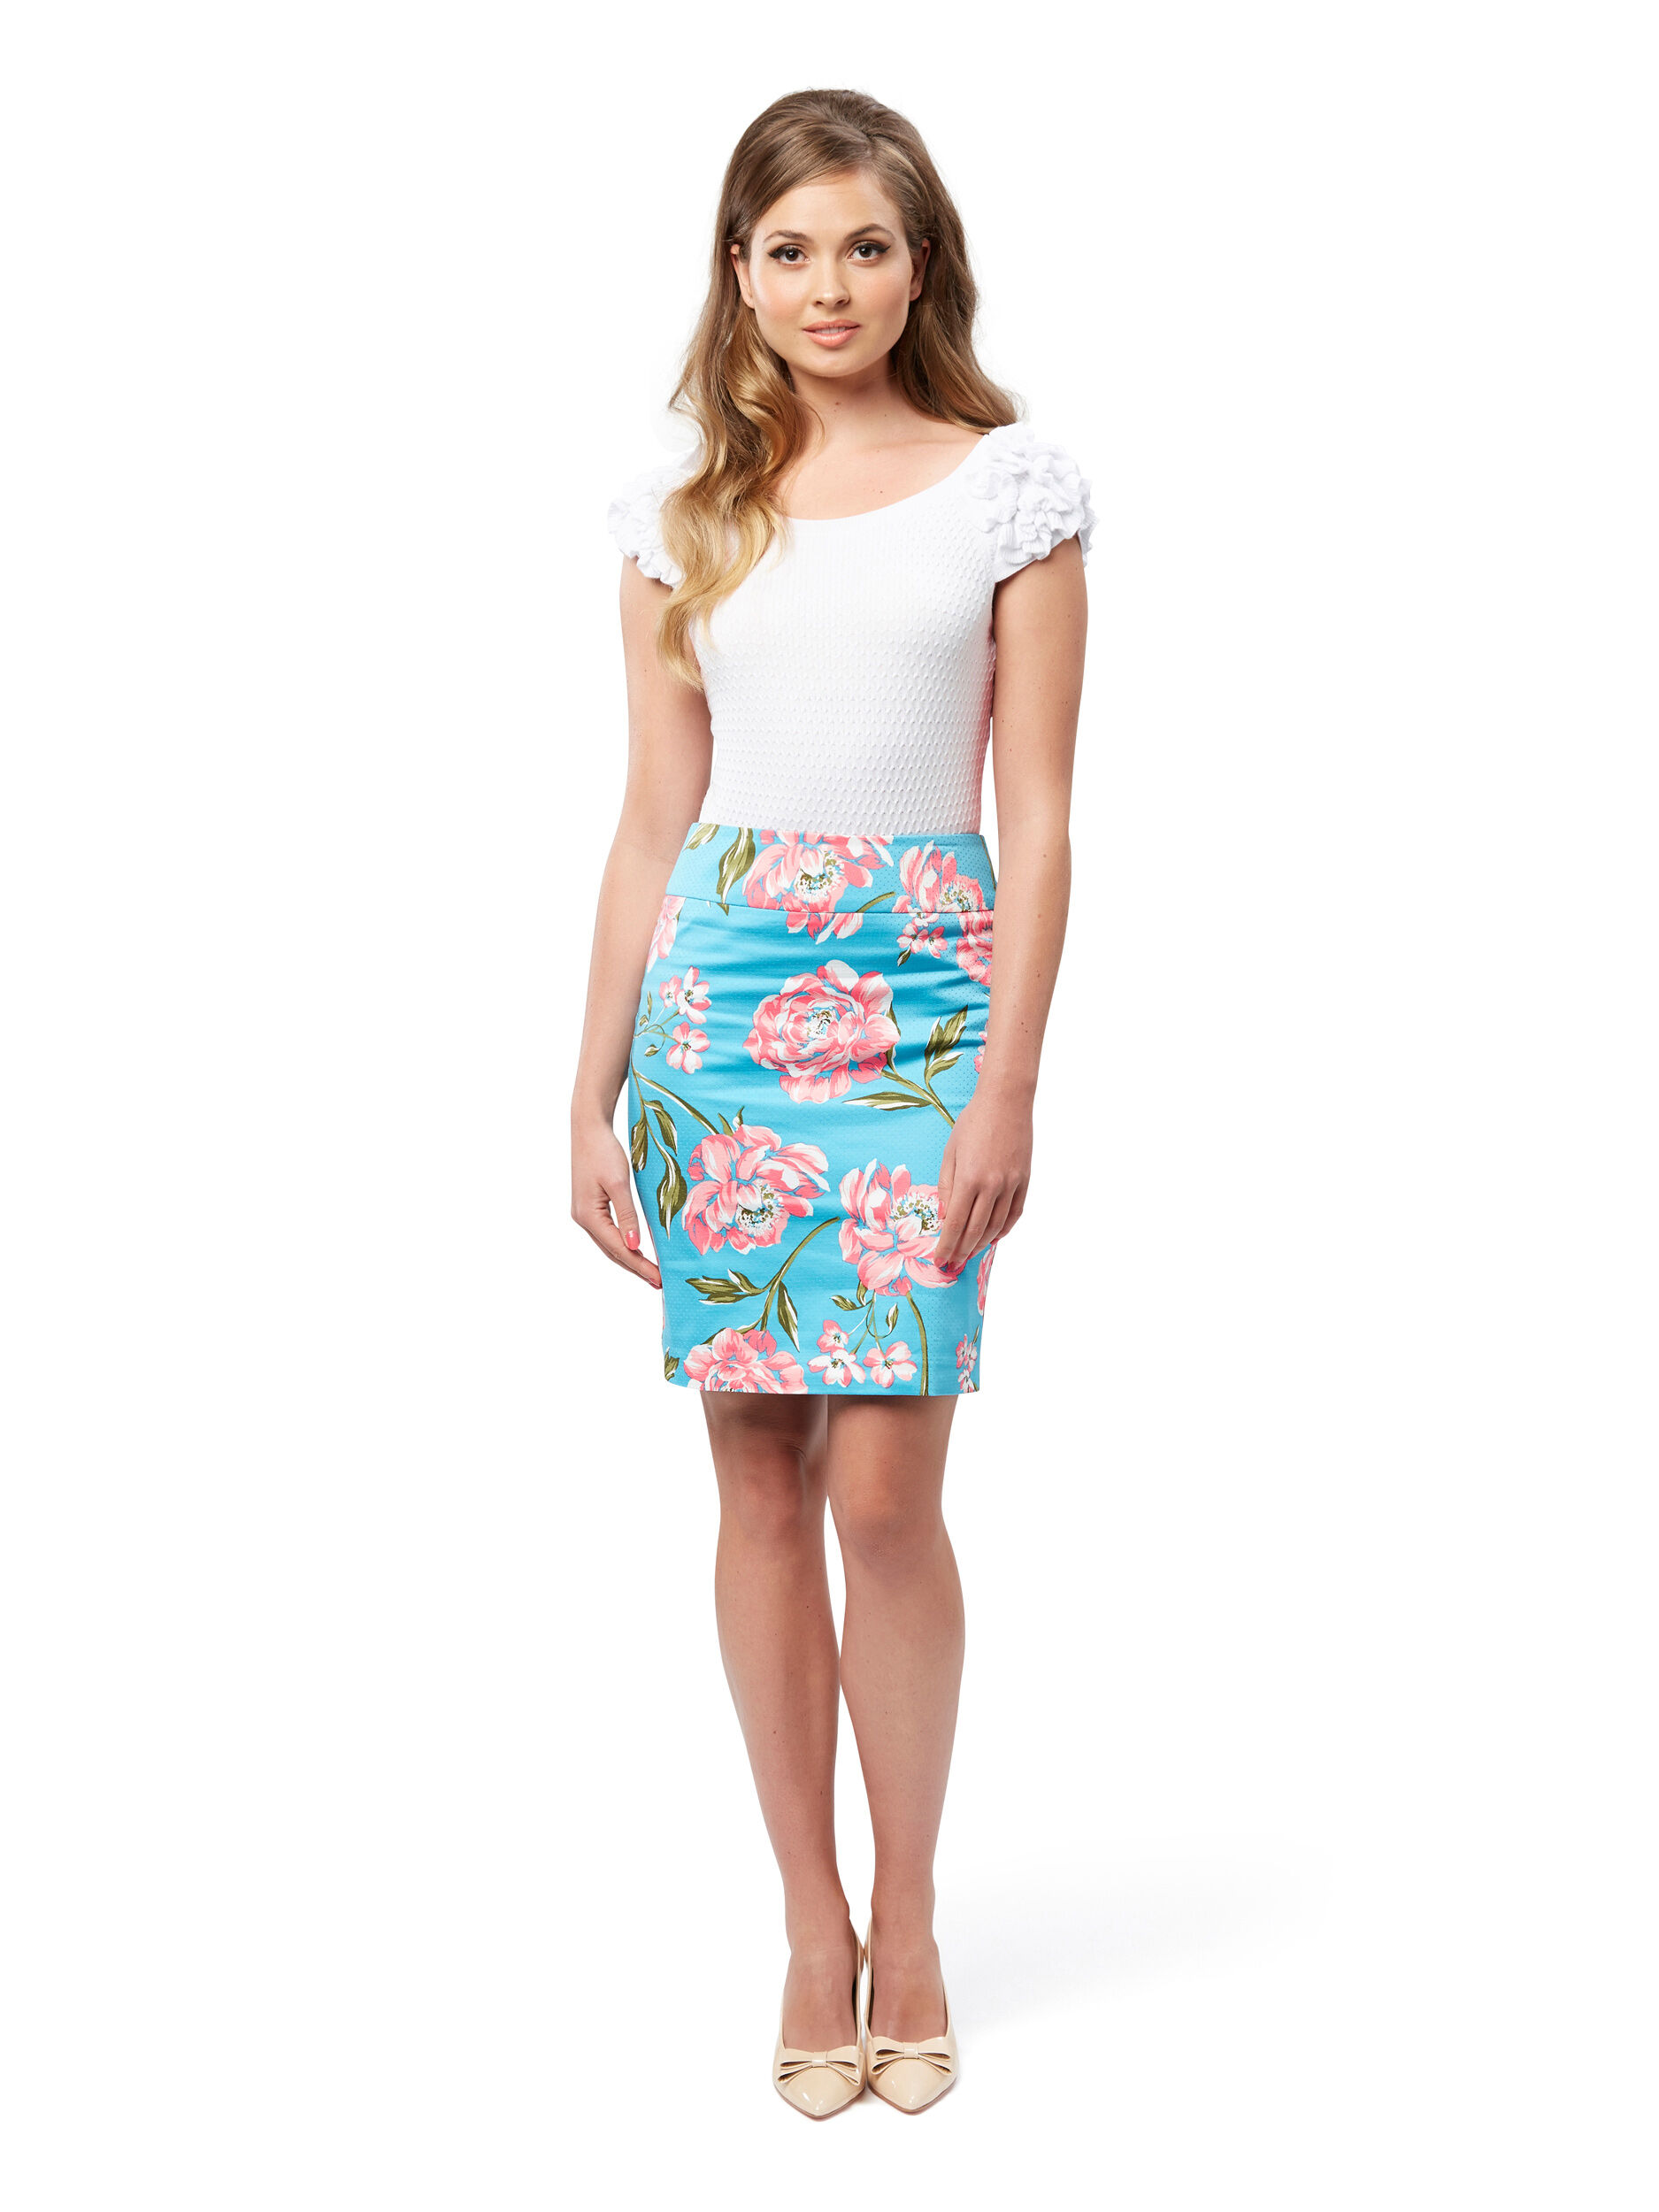 Yes Darling Skirt